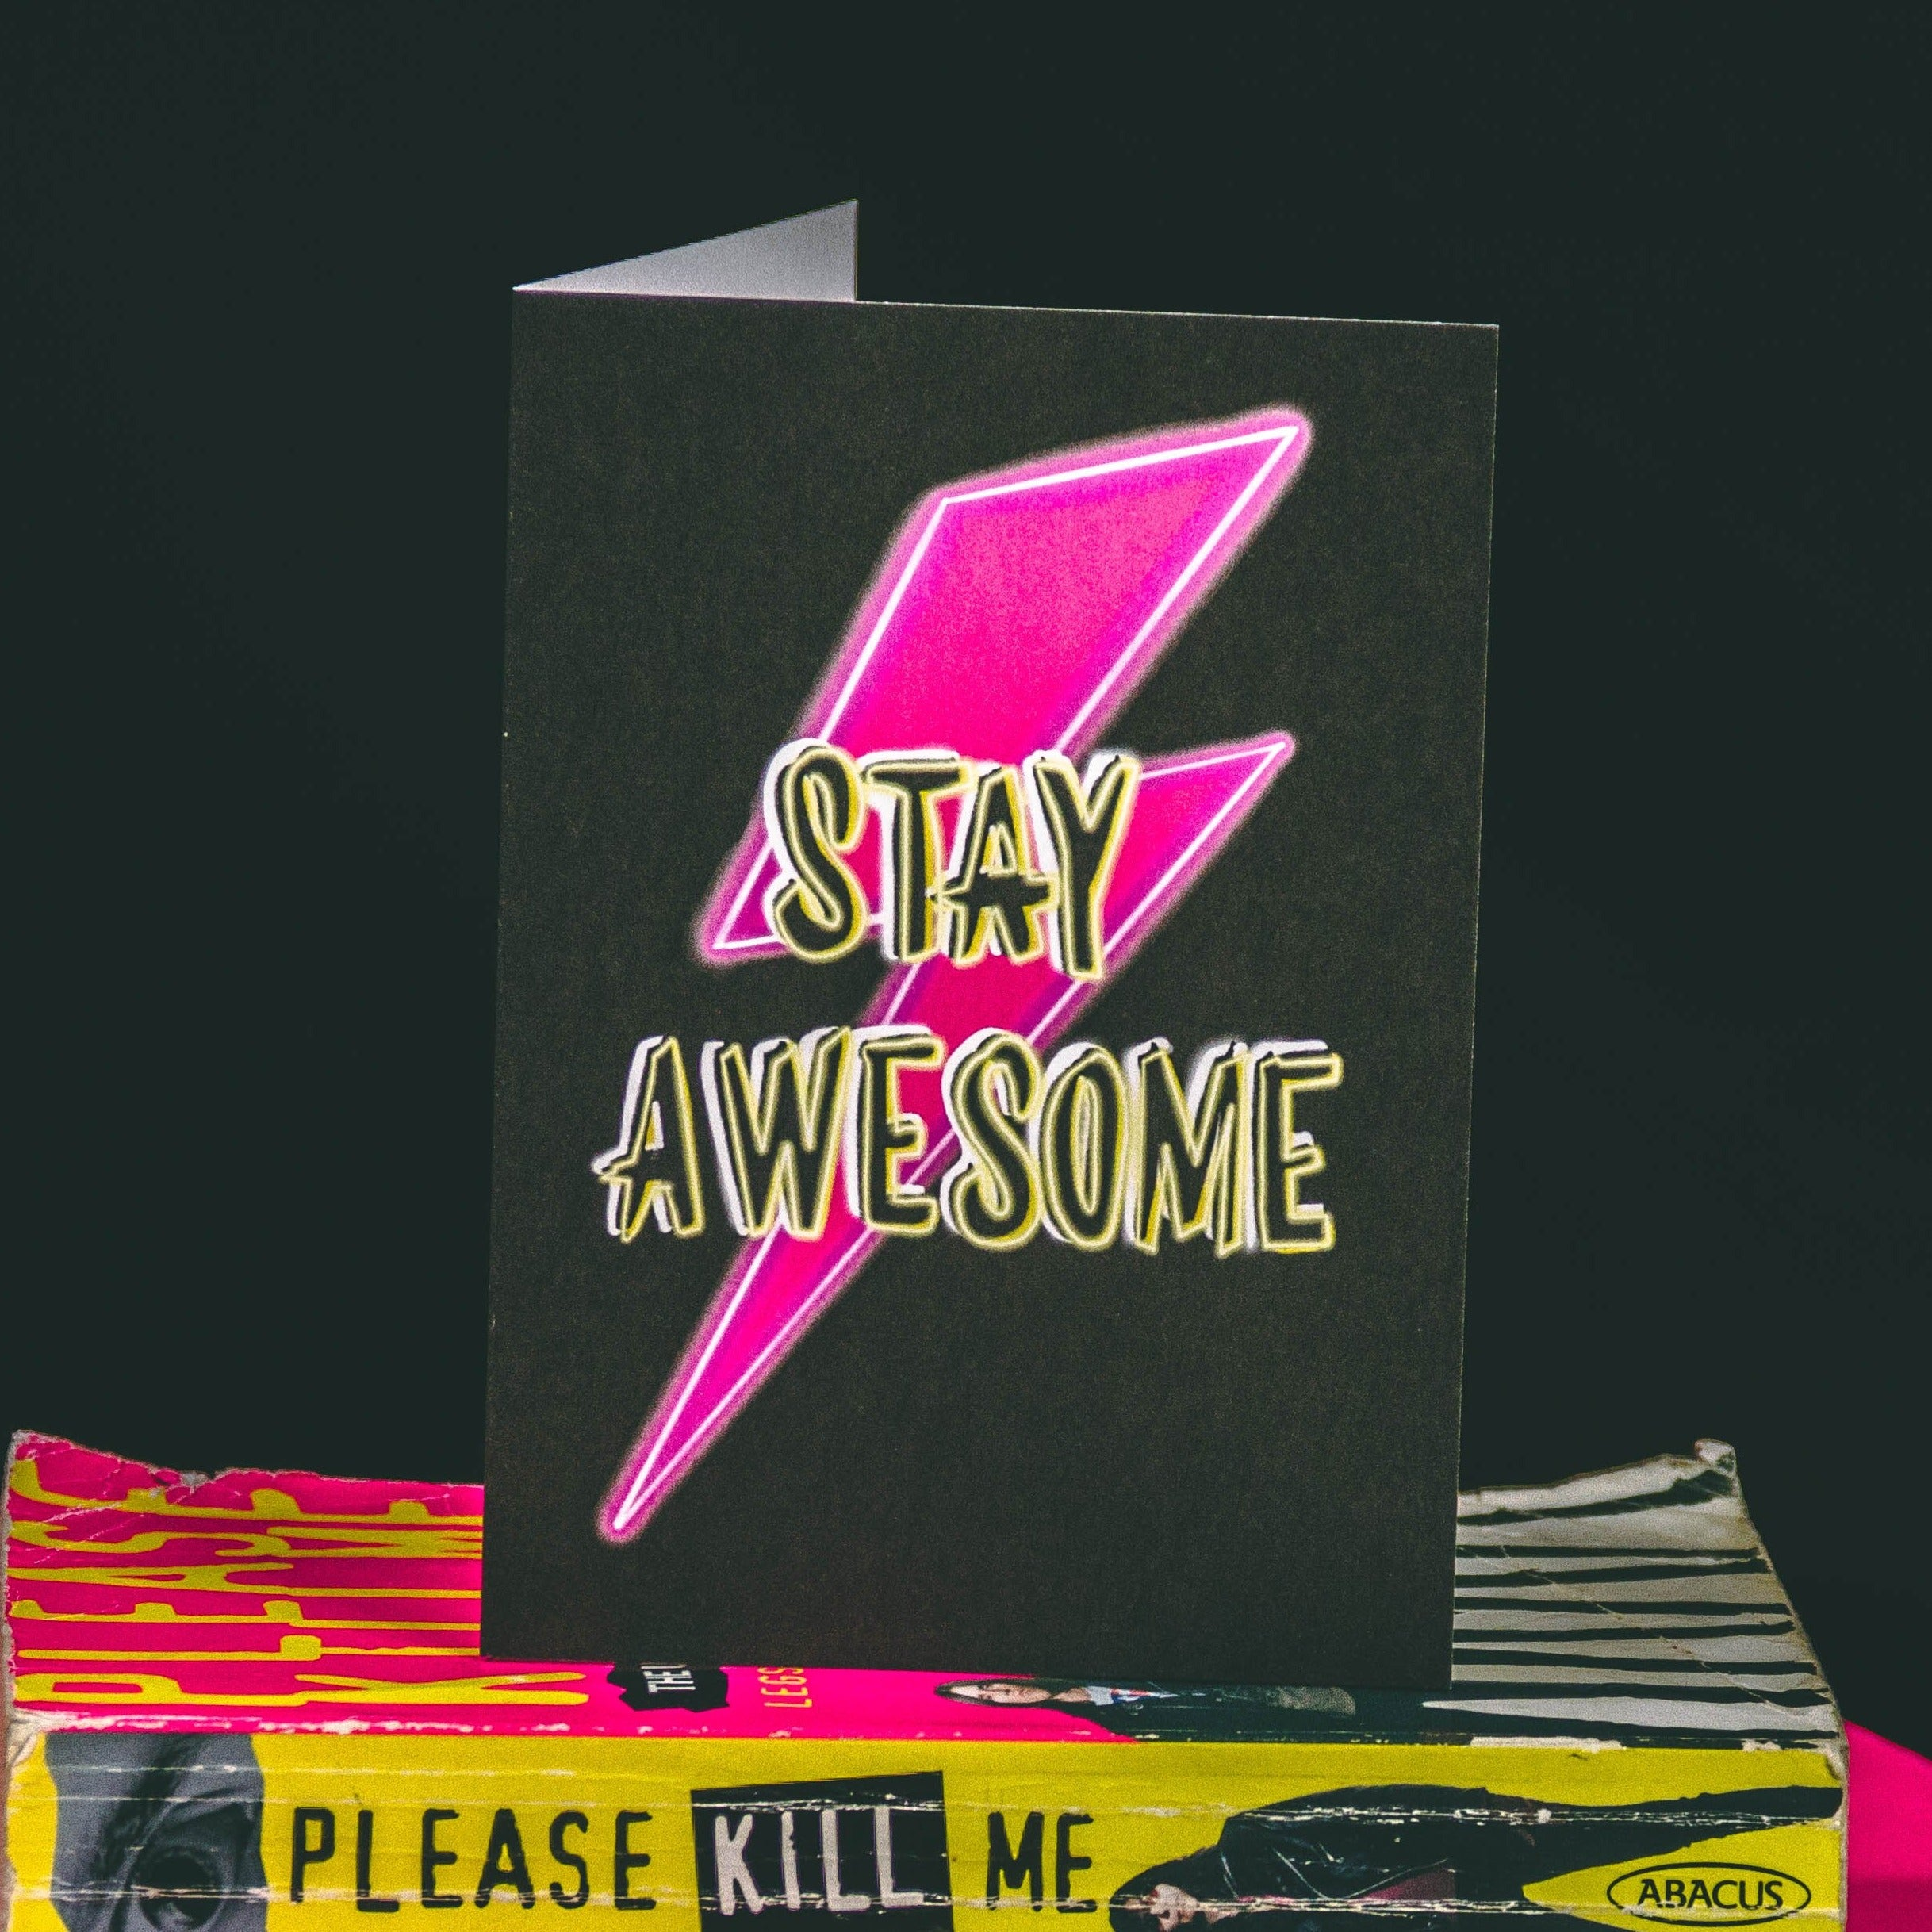 A6 Black Greetings Card With Pink Bowie Lightening Bolt and Stay Awesome Slogan by  Wayward